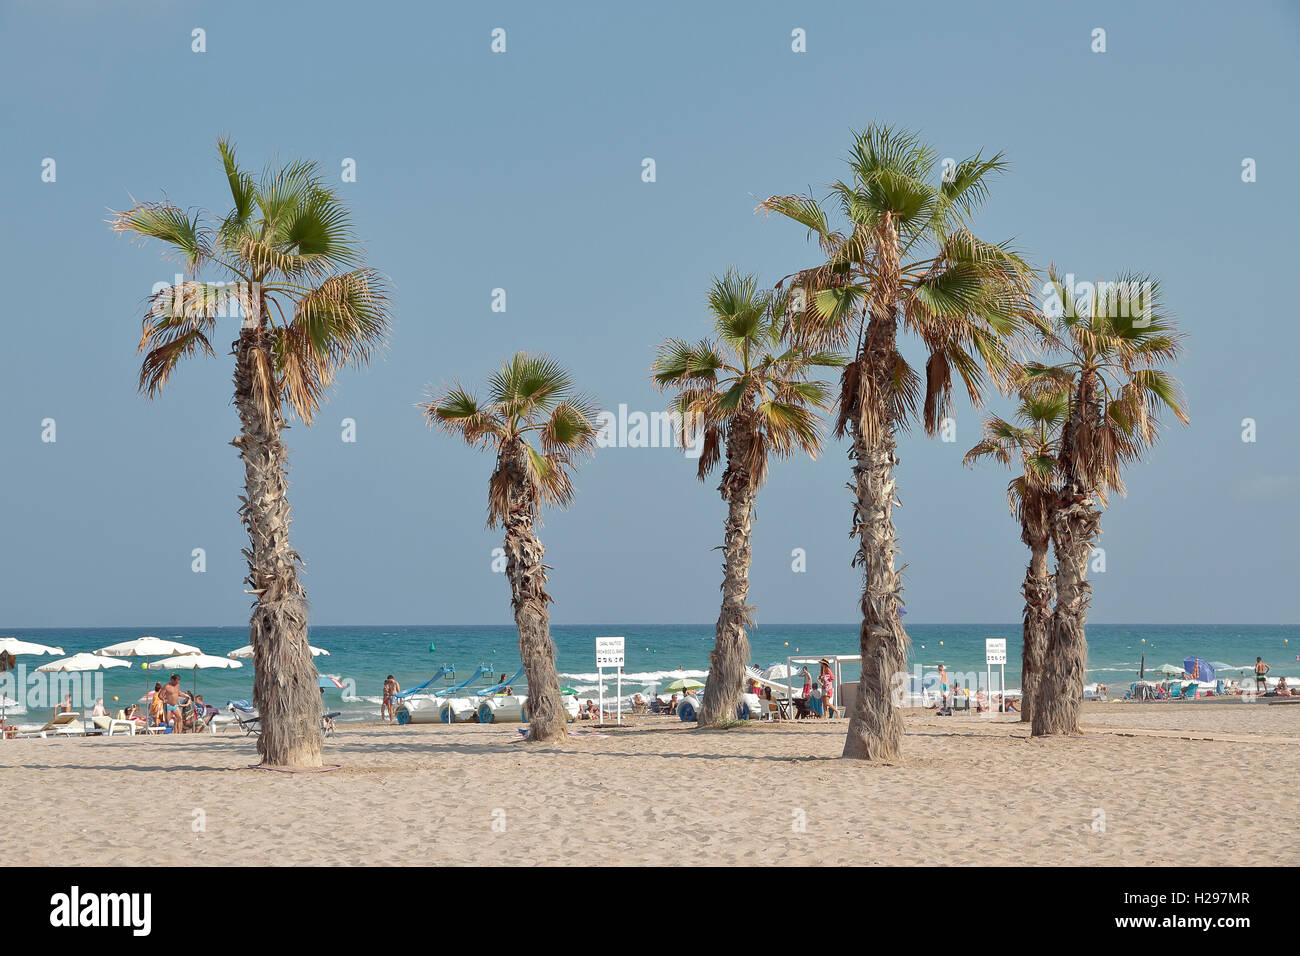 Beach Landscape With Palm Trees On Foreground In San Juan Alicante Spain